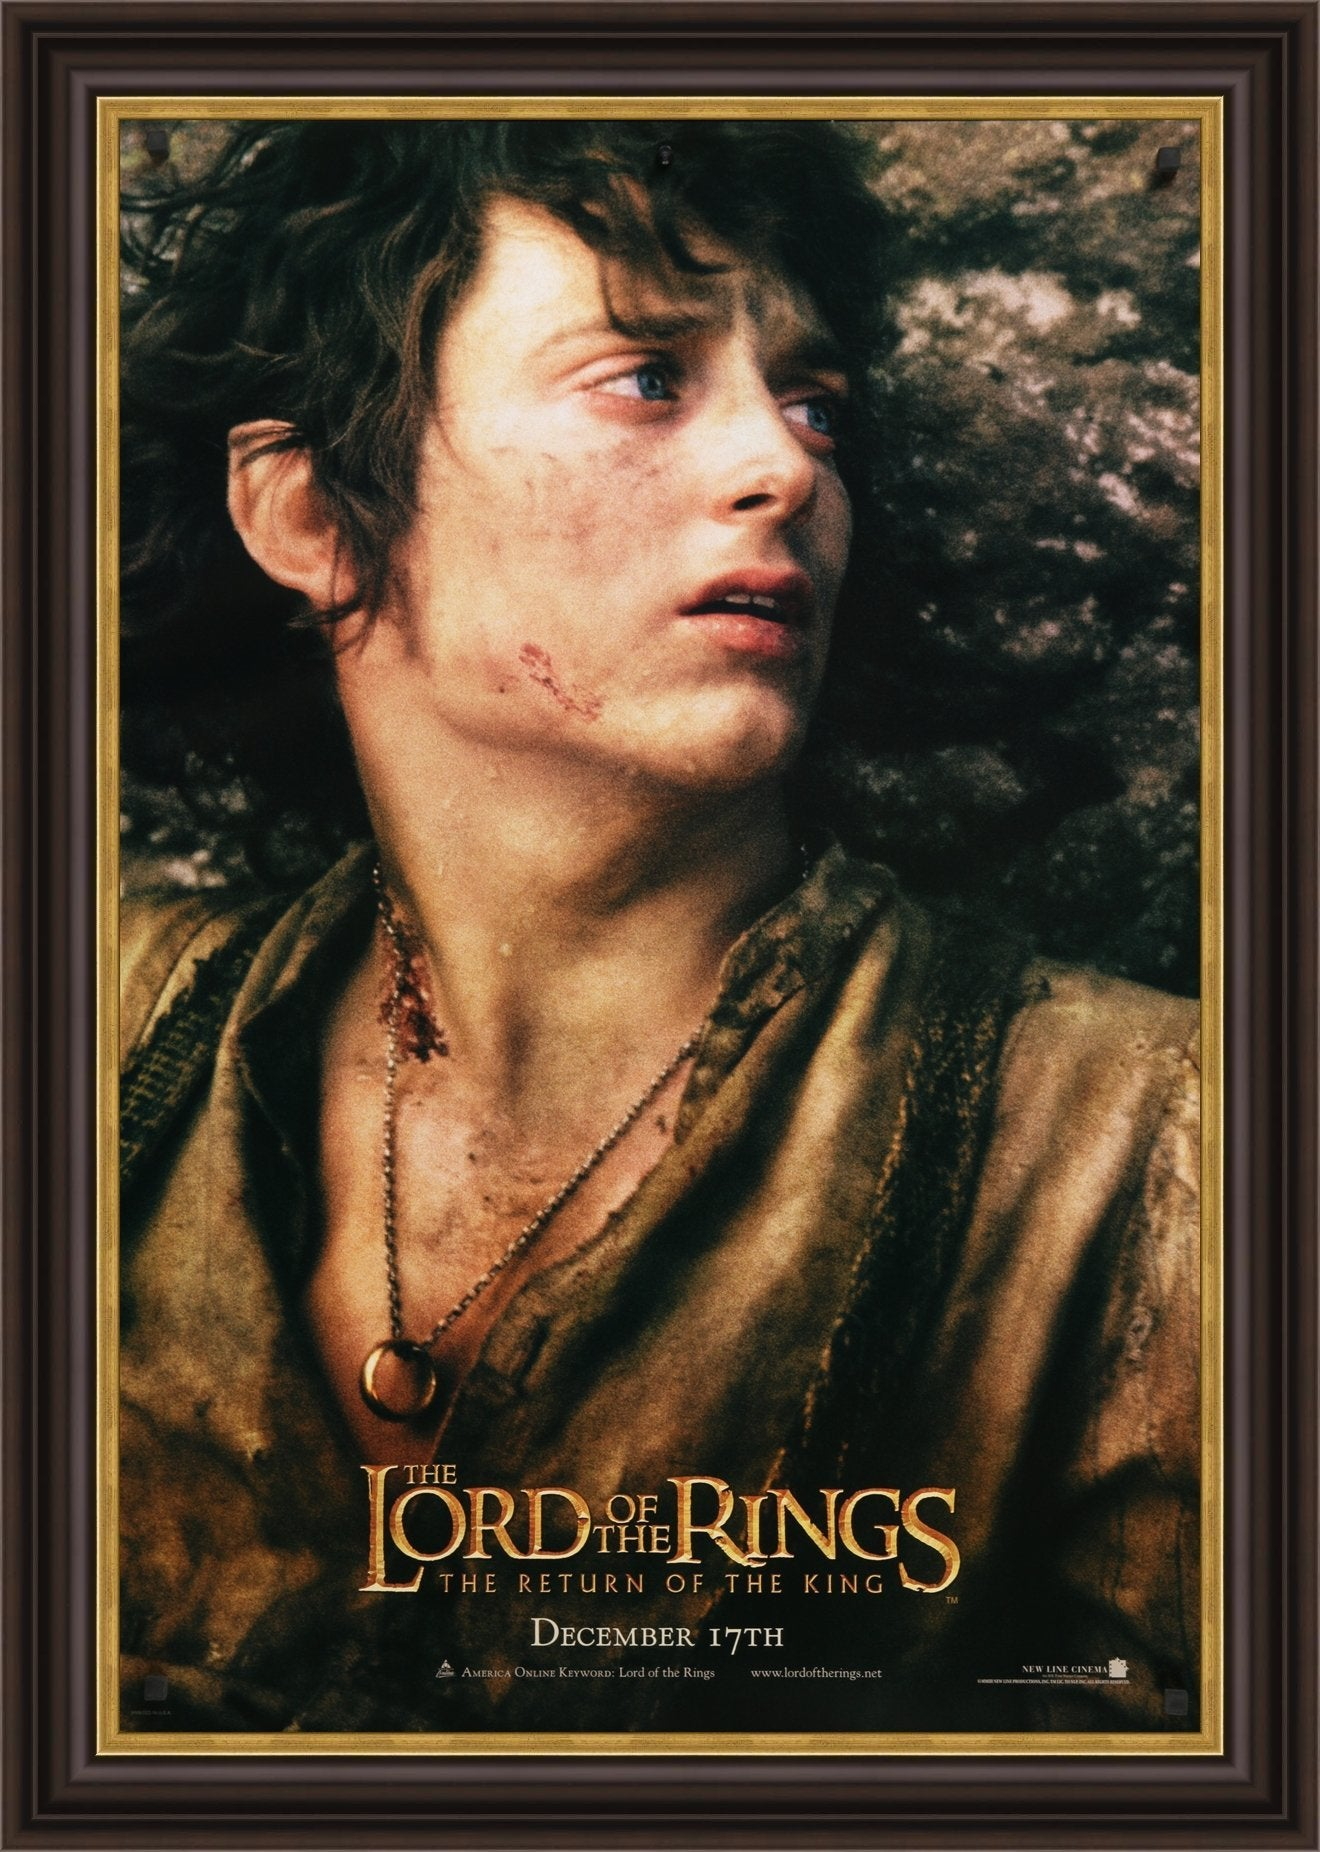 An original movie poster for the film Lord of the Rings: The Return of the King